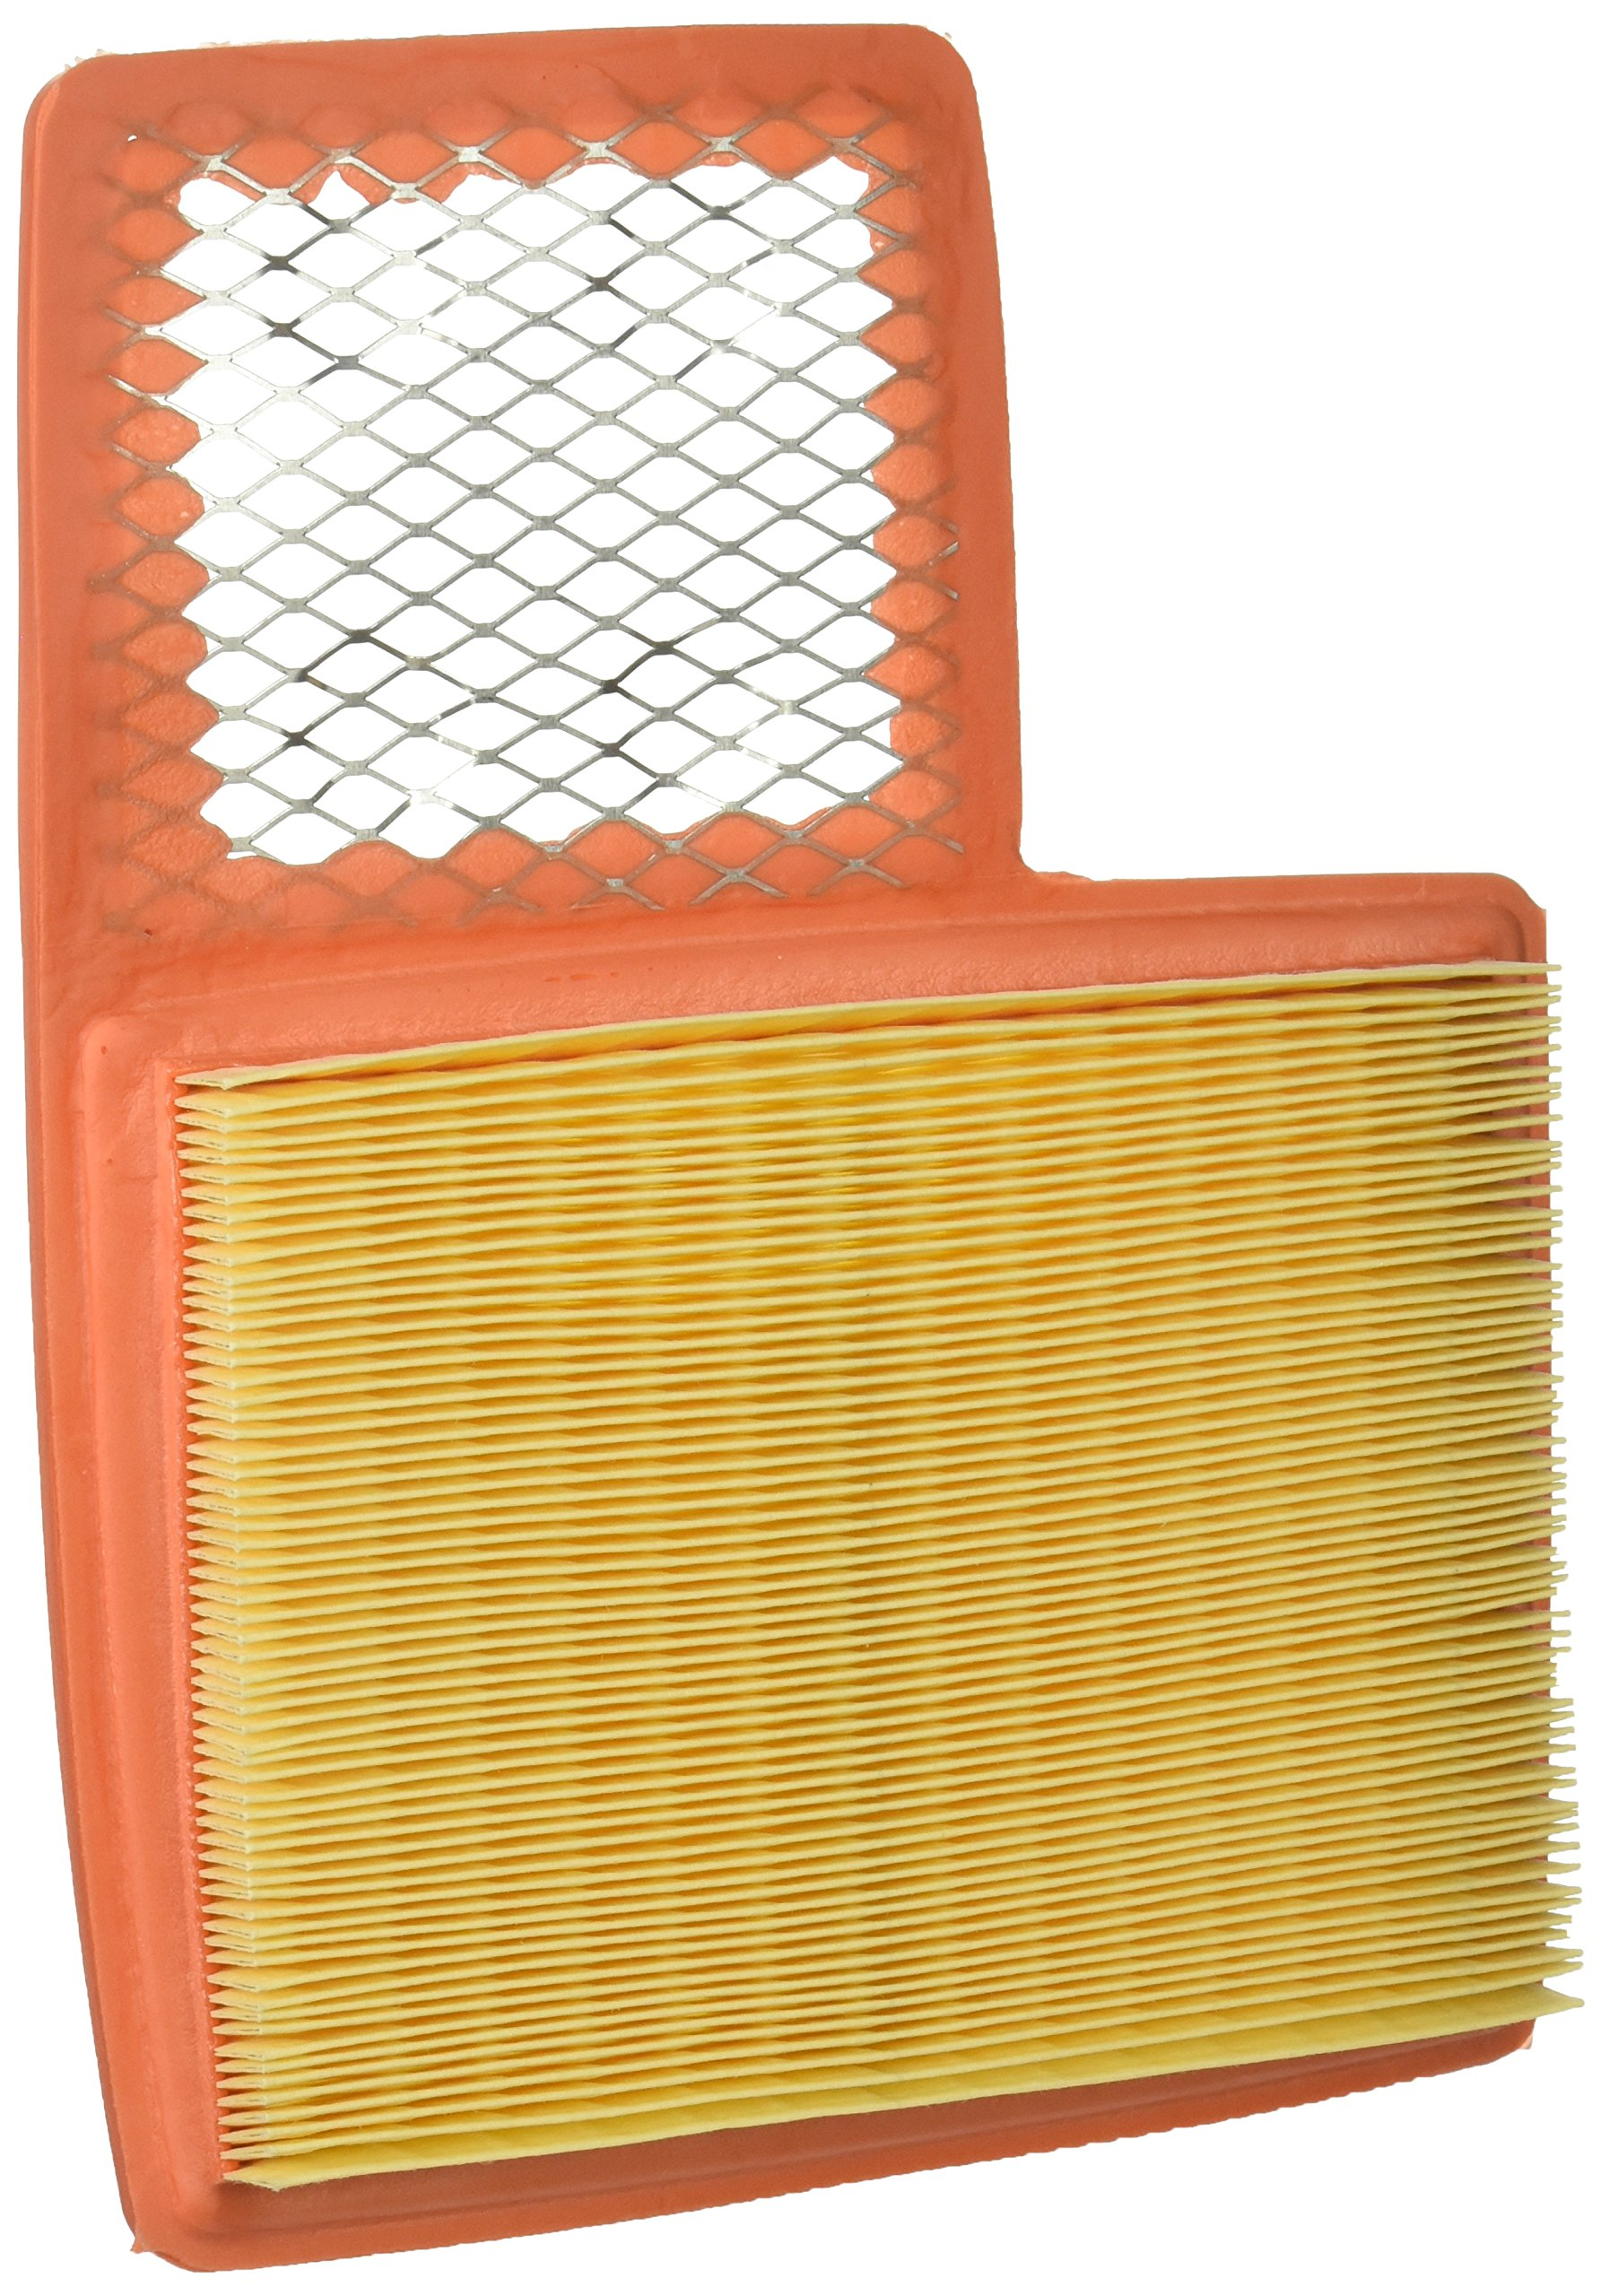 WIX Filters - 49130 Heavy Duty Air Filter Panel, Pack of 1 by Wix